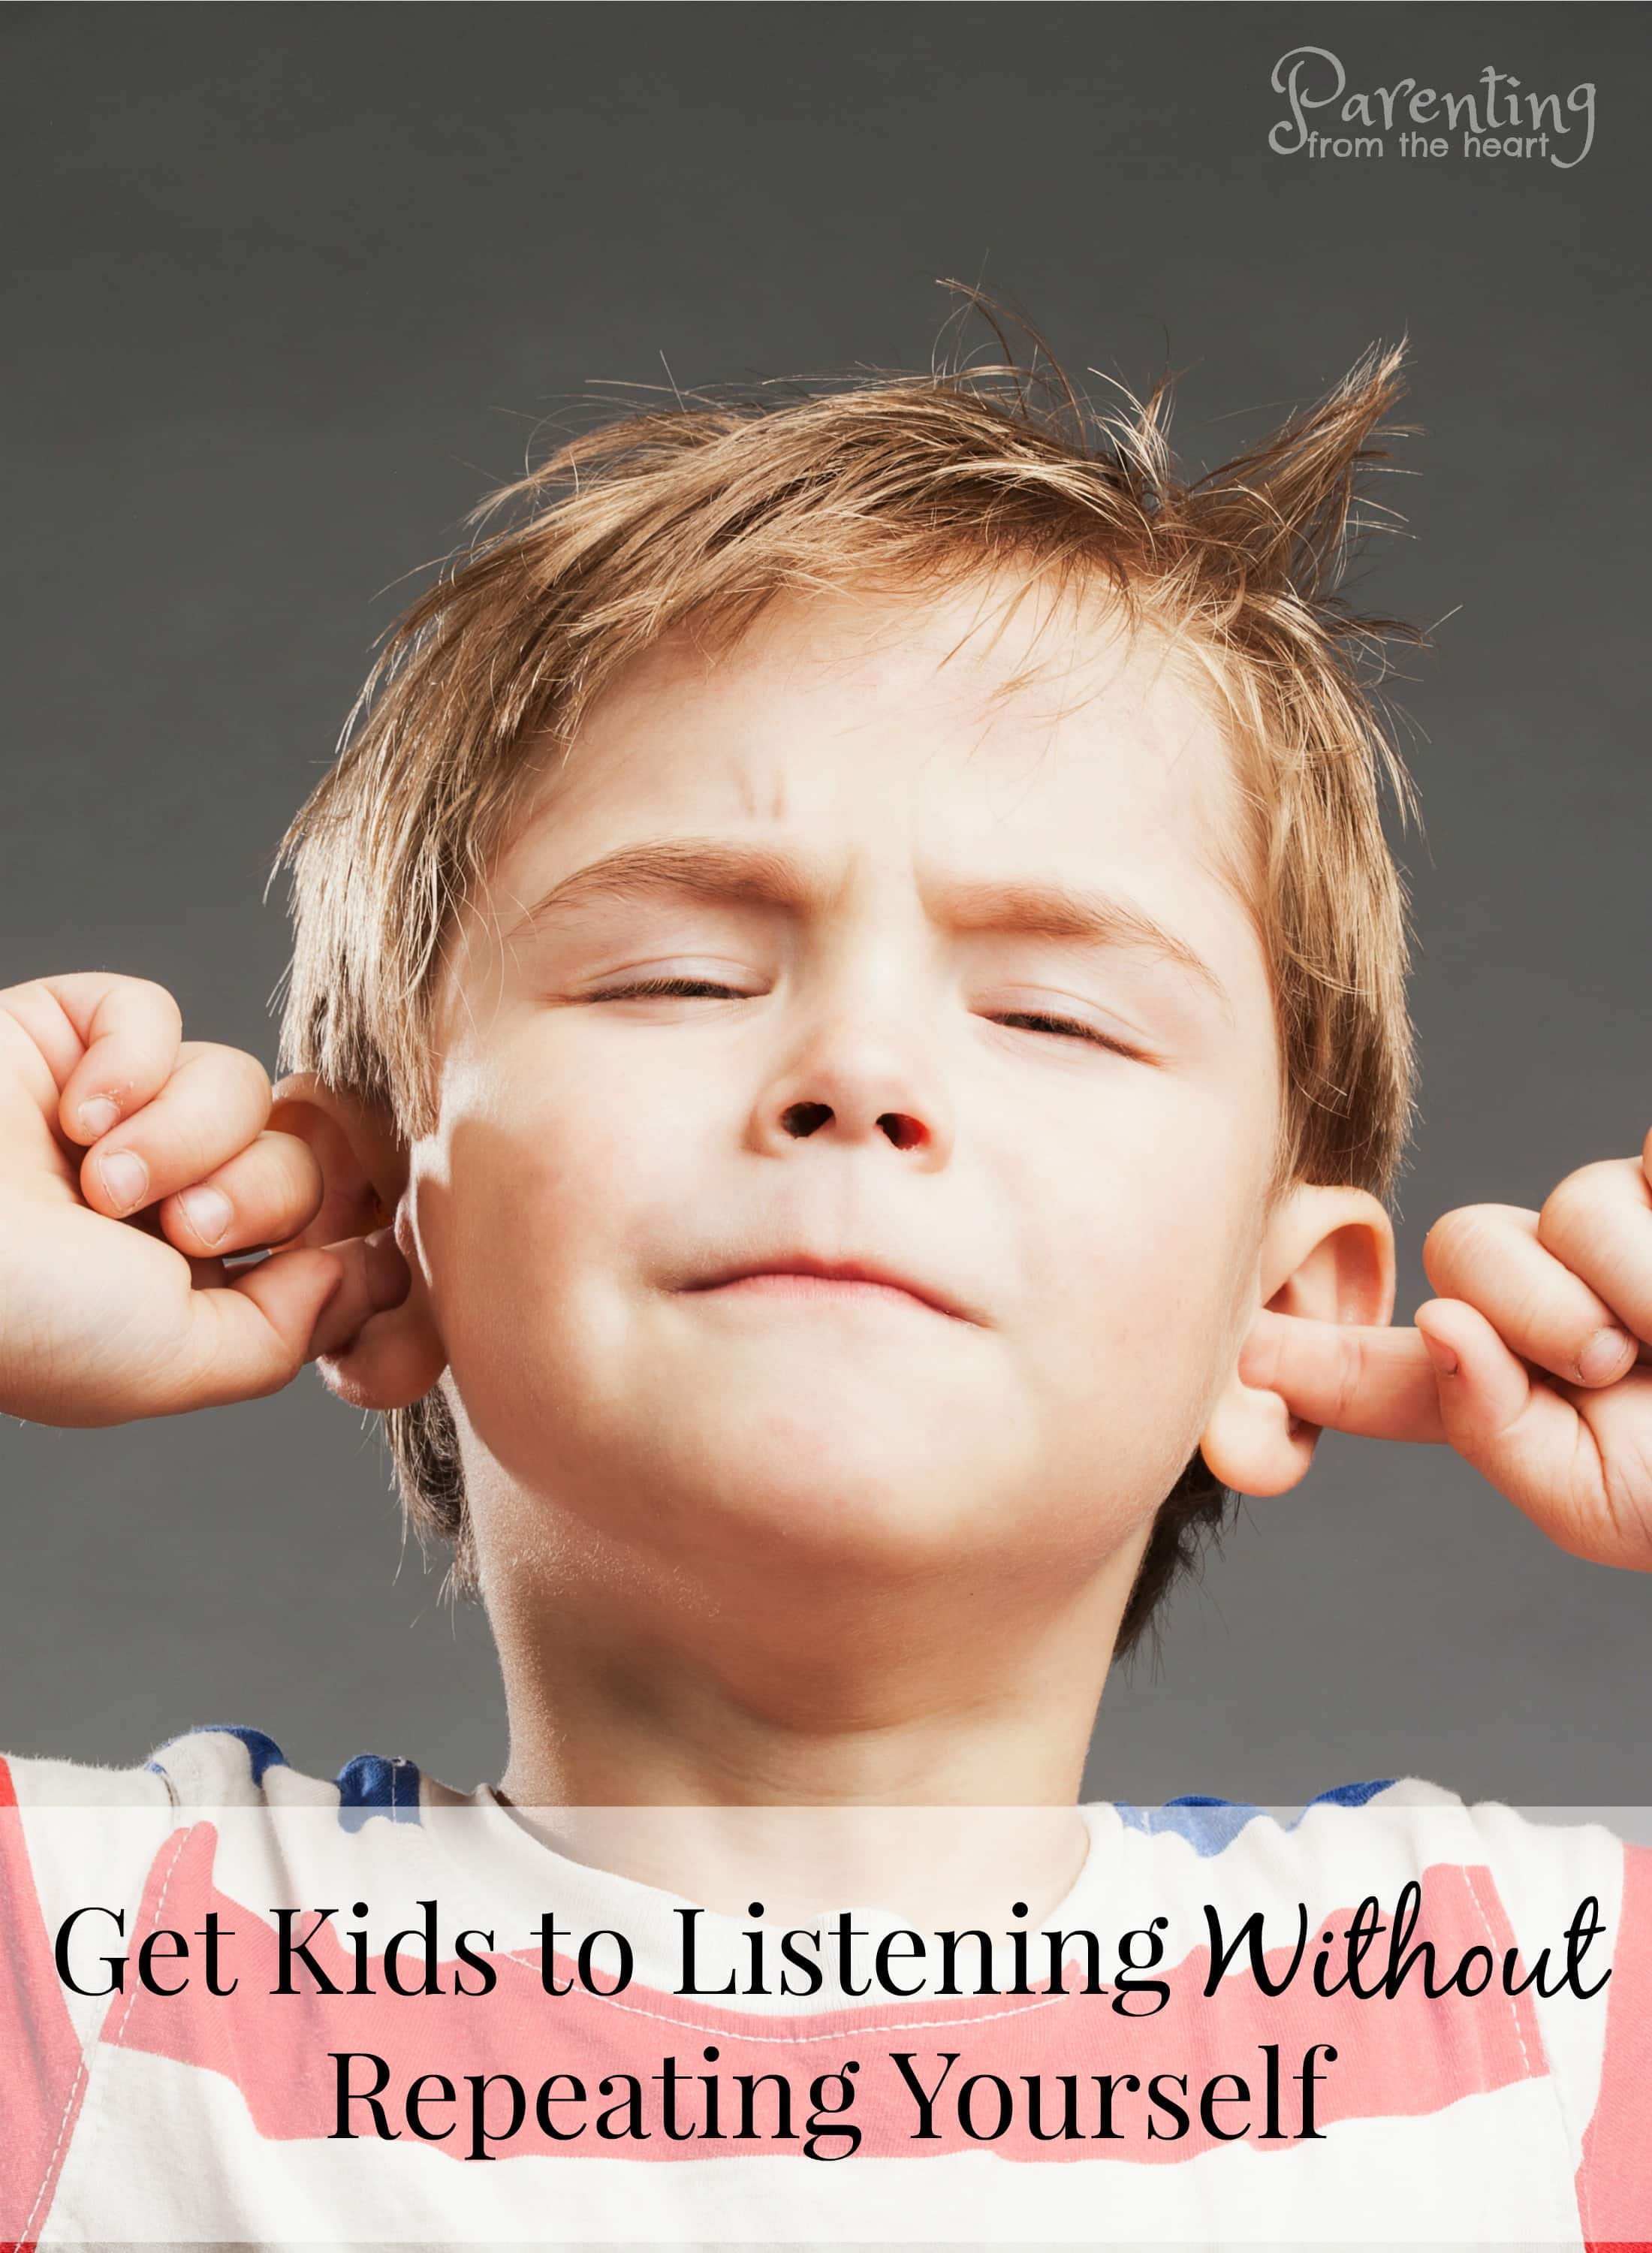 You find you get caught in power struggles with your kids or you repeat yourself endlessly and your kids don't listen, these strategies are for you. The kids neglect their responsibilities and you feel like you can't avoid yelling. Here you will find practical parenting tips on how to get kids to listen. #parenting #parentingtips #parentinghacks #positiveparenting #positivediscipline #momlife